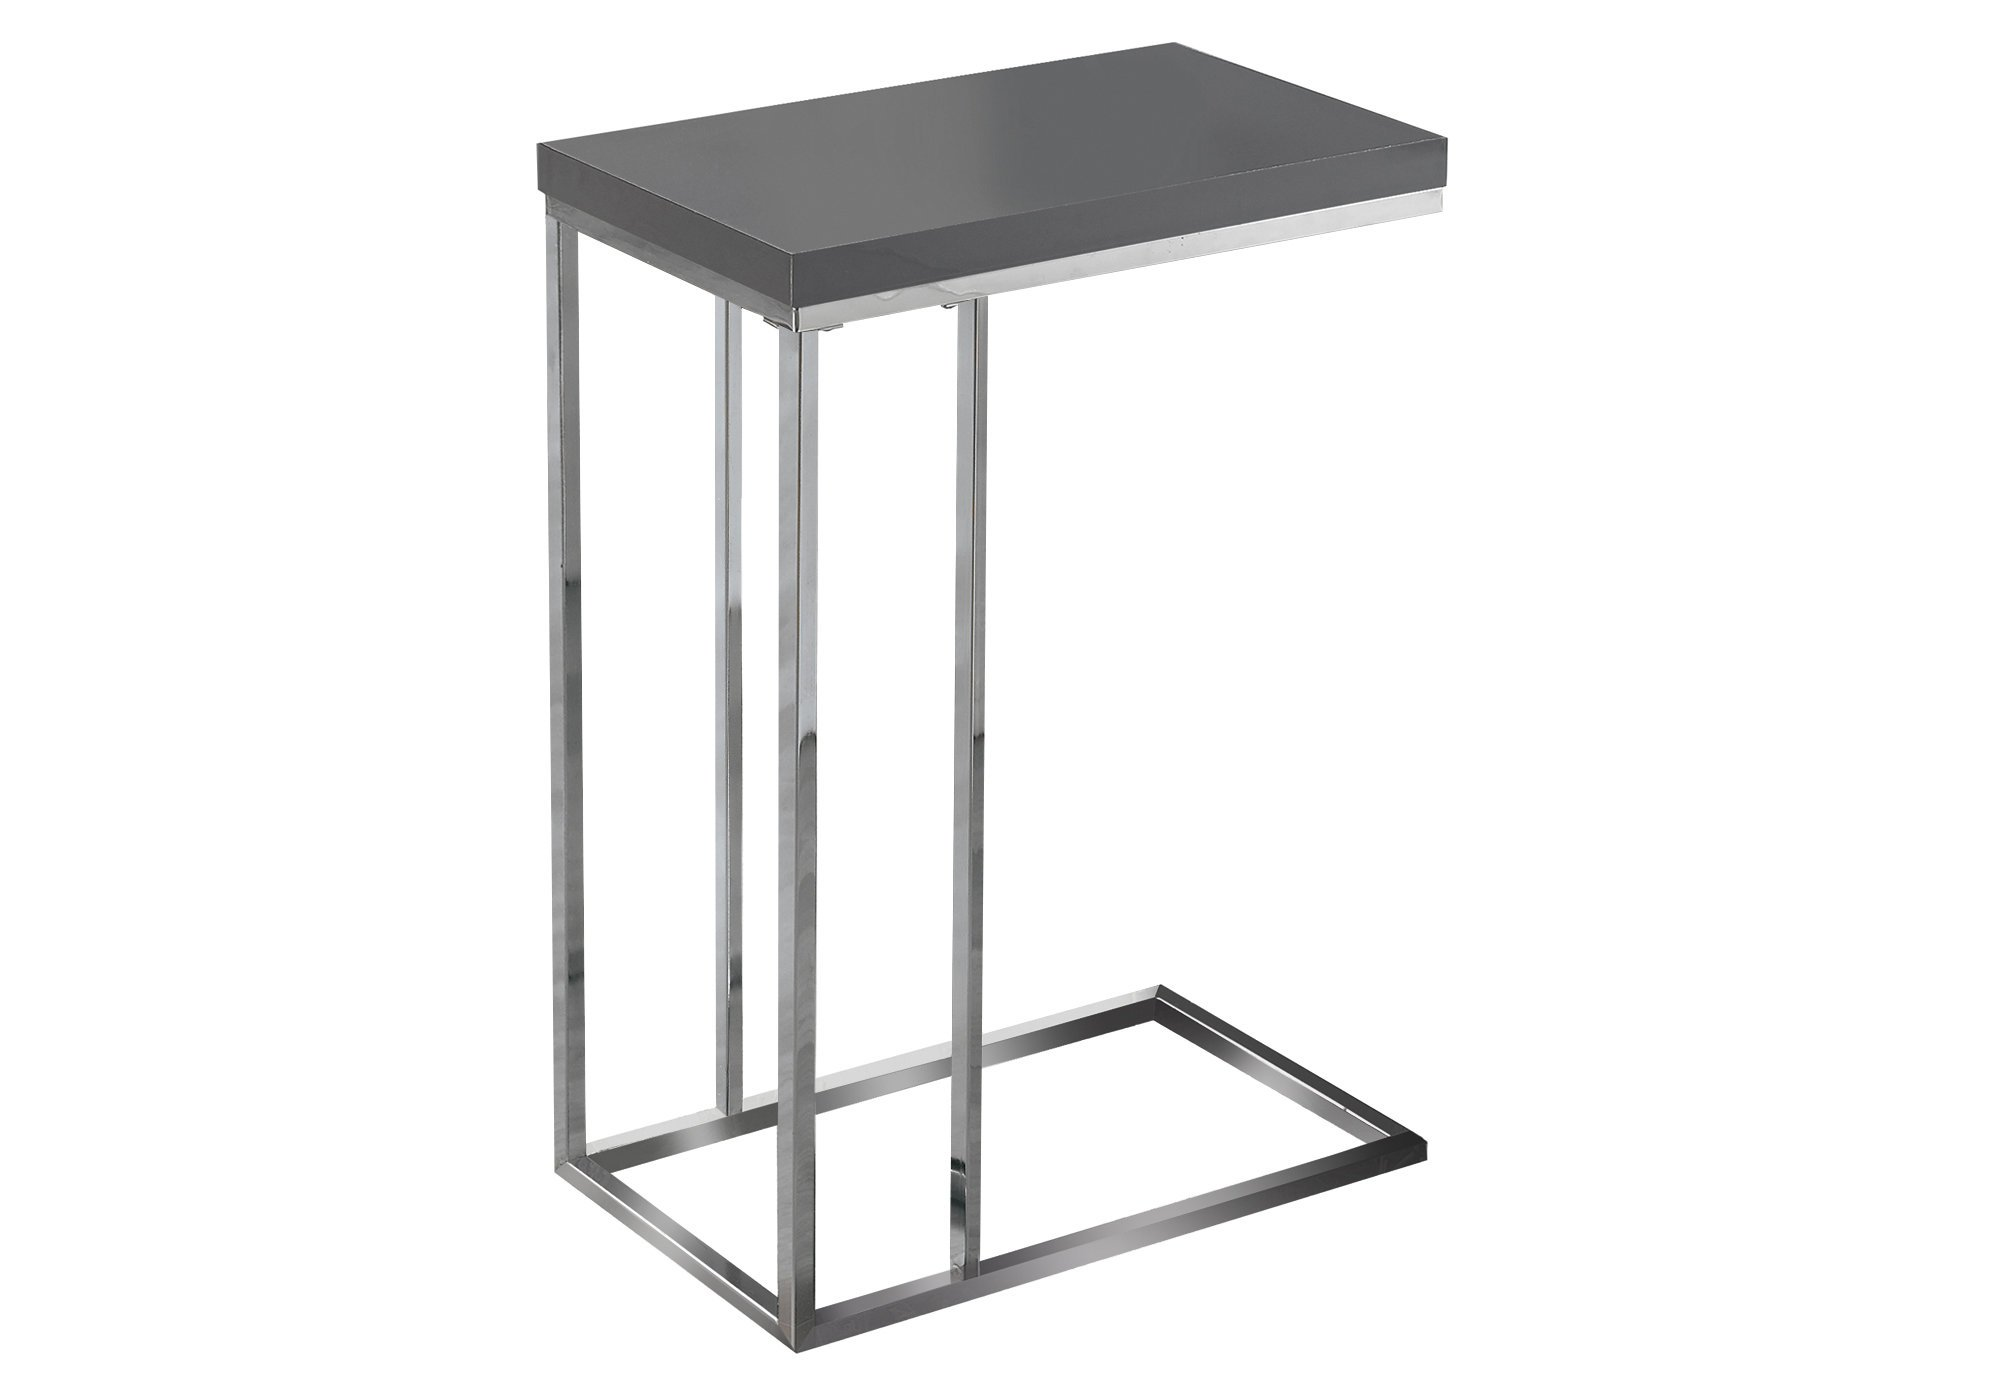 amazing monarch specialties accent table glossy grey with chrome metal drum stool base dining chair covers target counter height bench barnwood small smoked glass coffee wooden